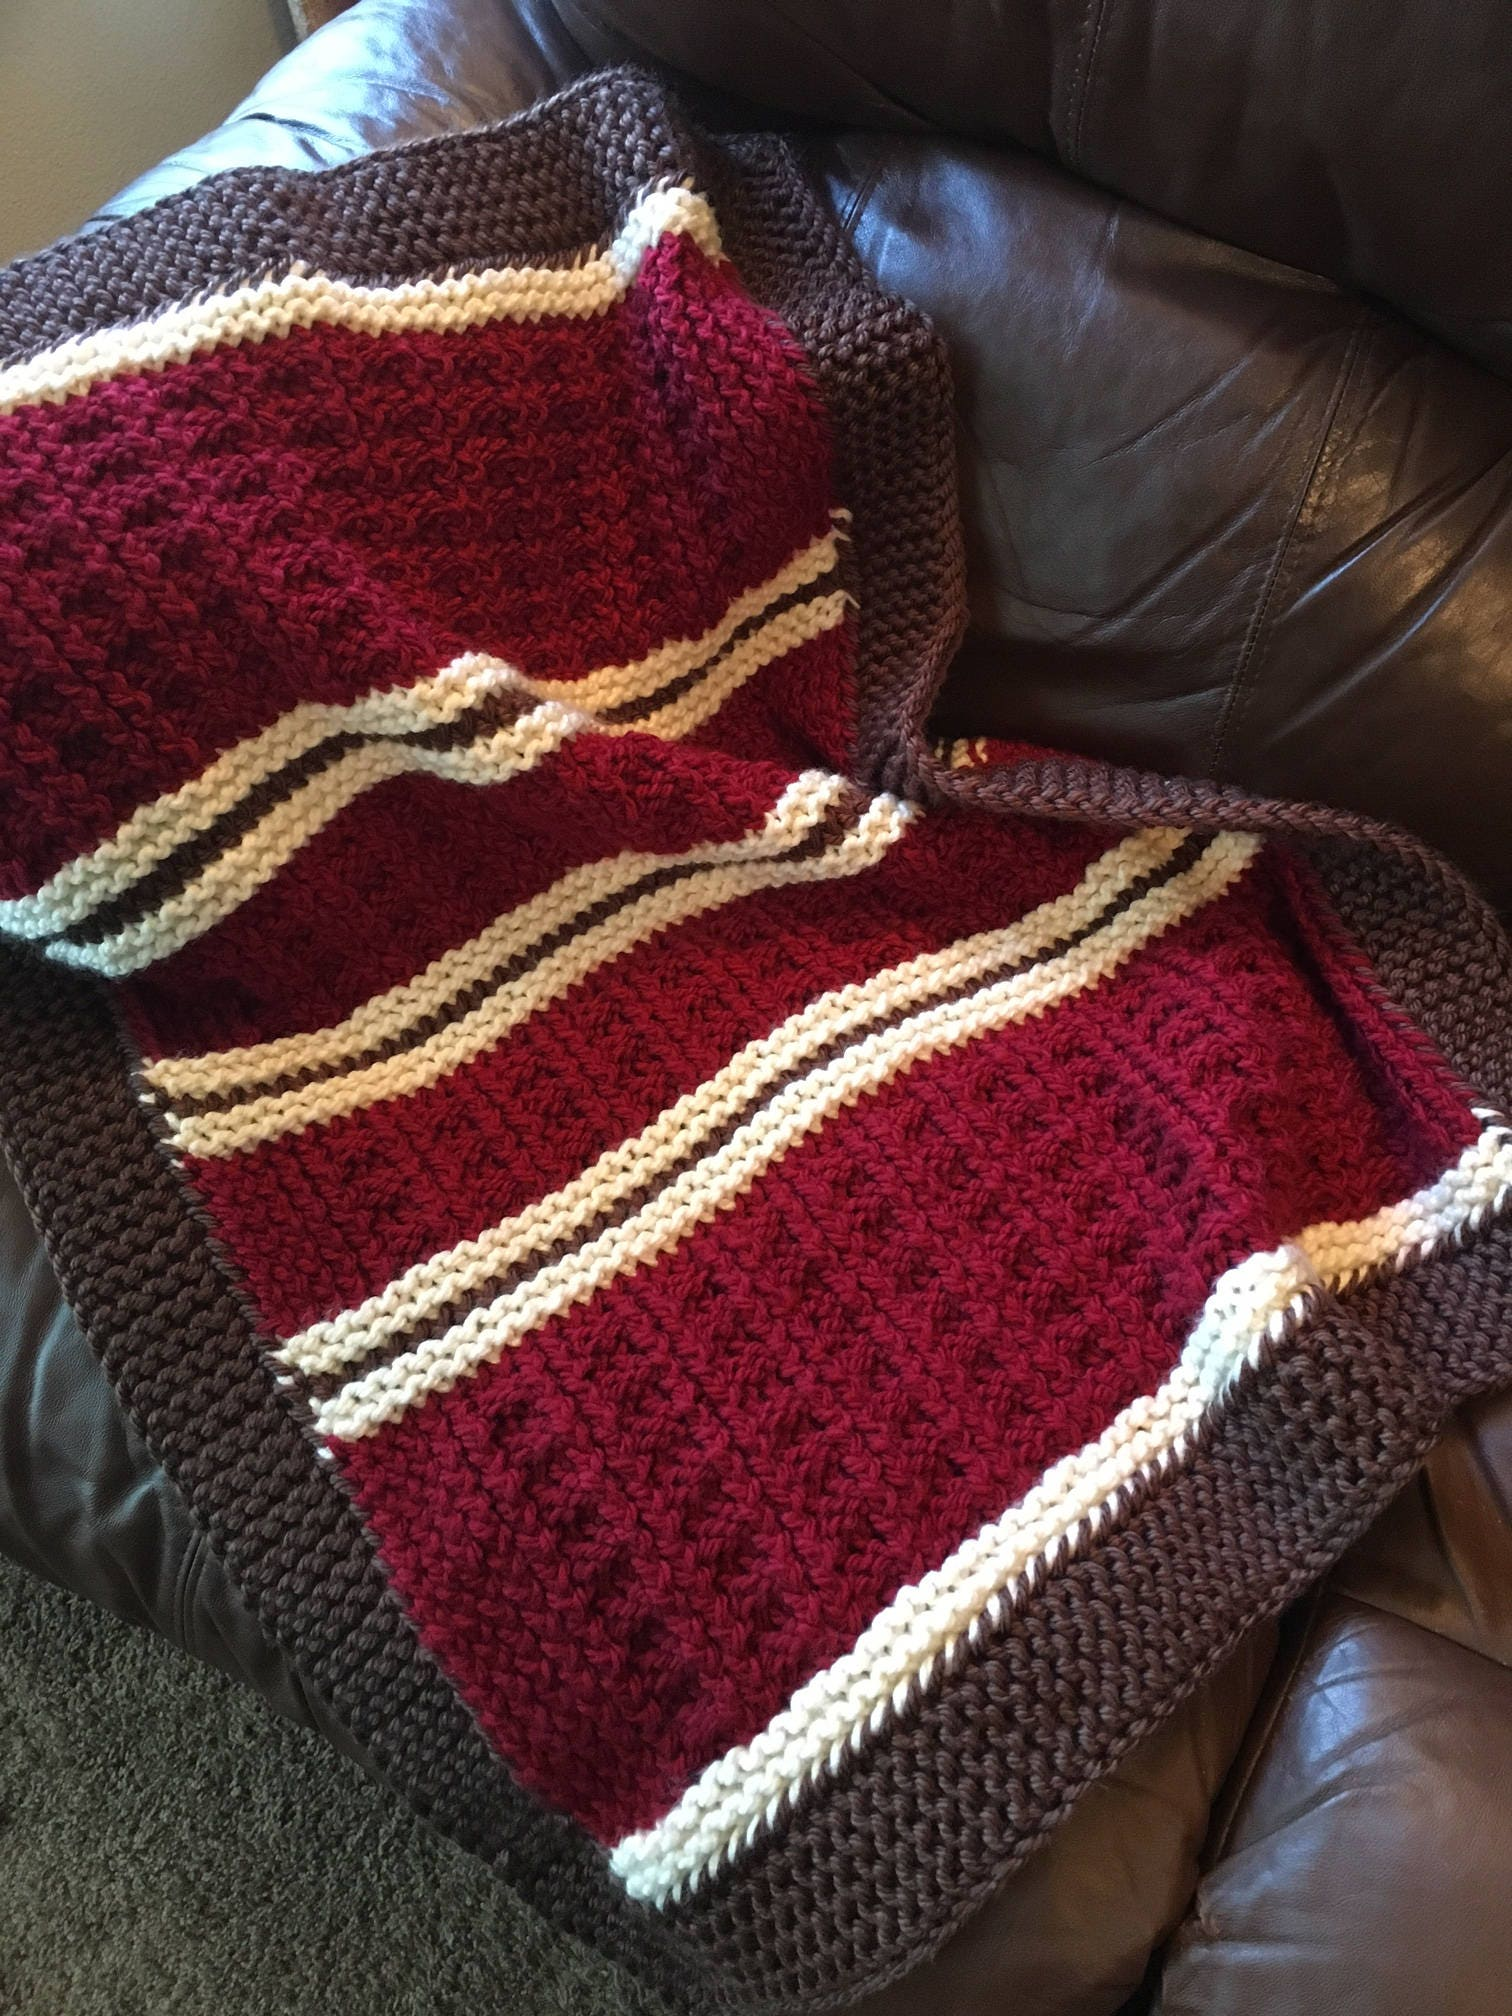 Knitting Loom Patterns Baby Blanket : Mountain Cabin Baby Blanket -- a loom knit pattern